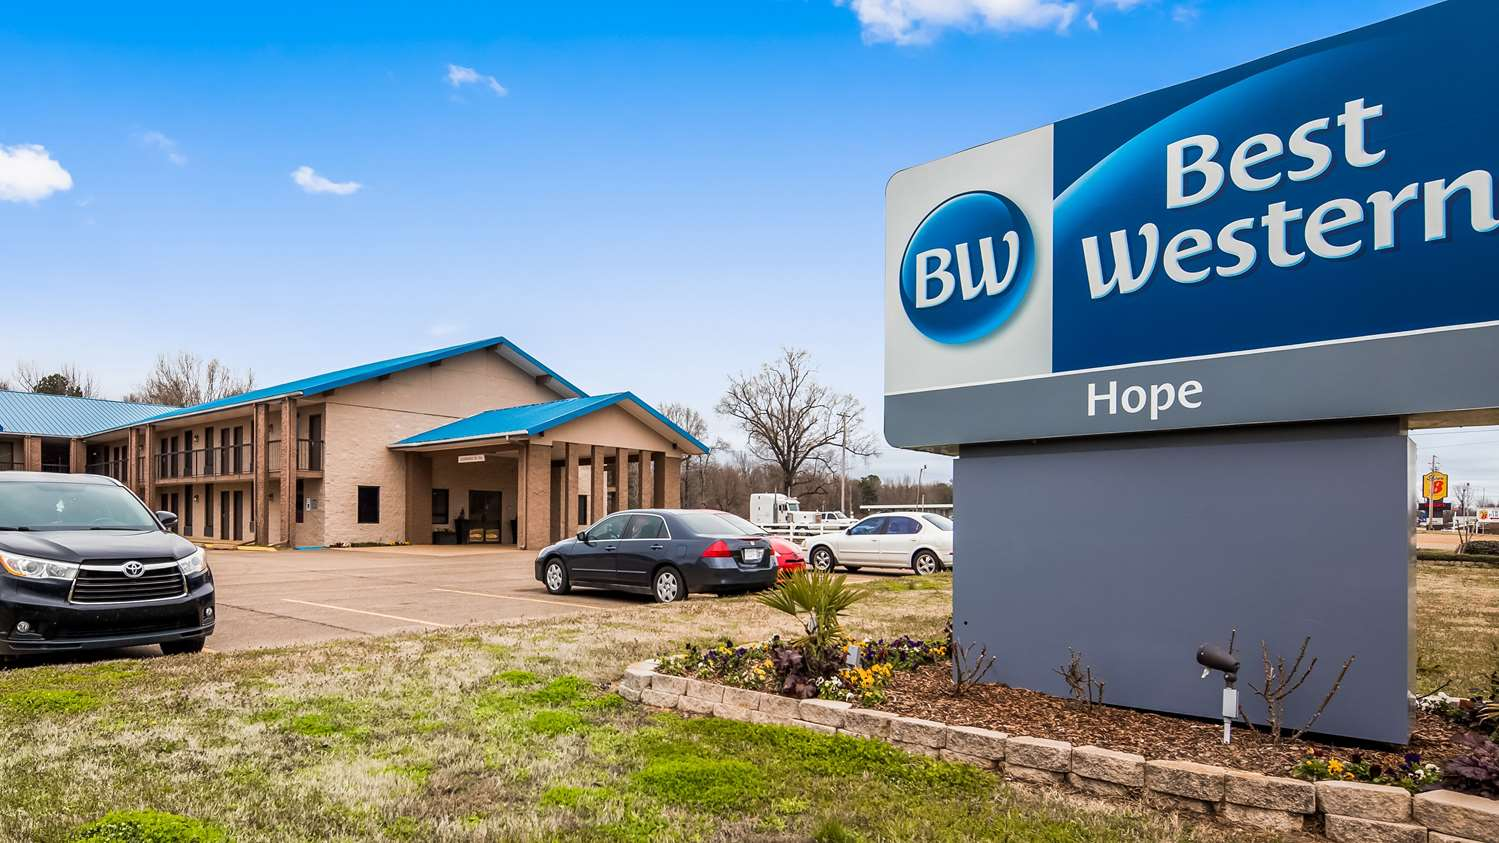 Best Western Hotel Hope